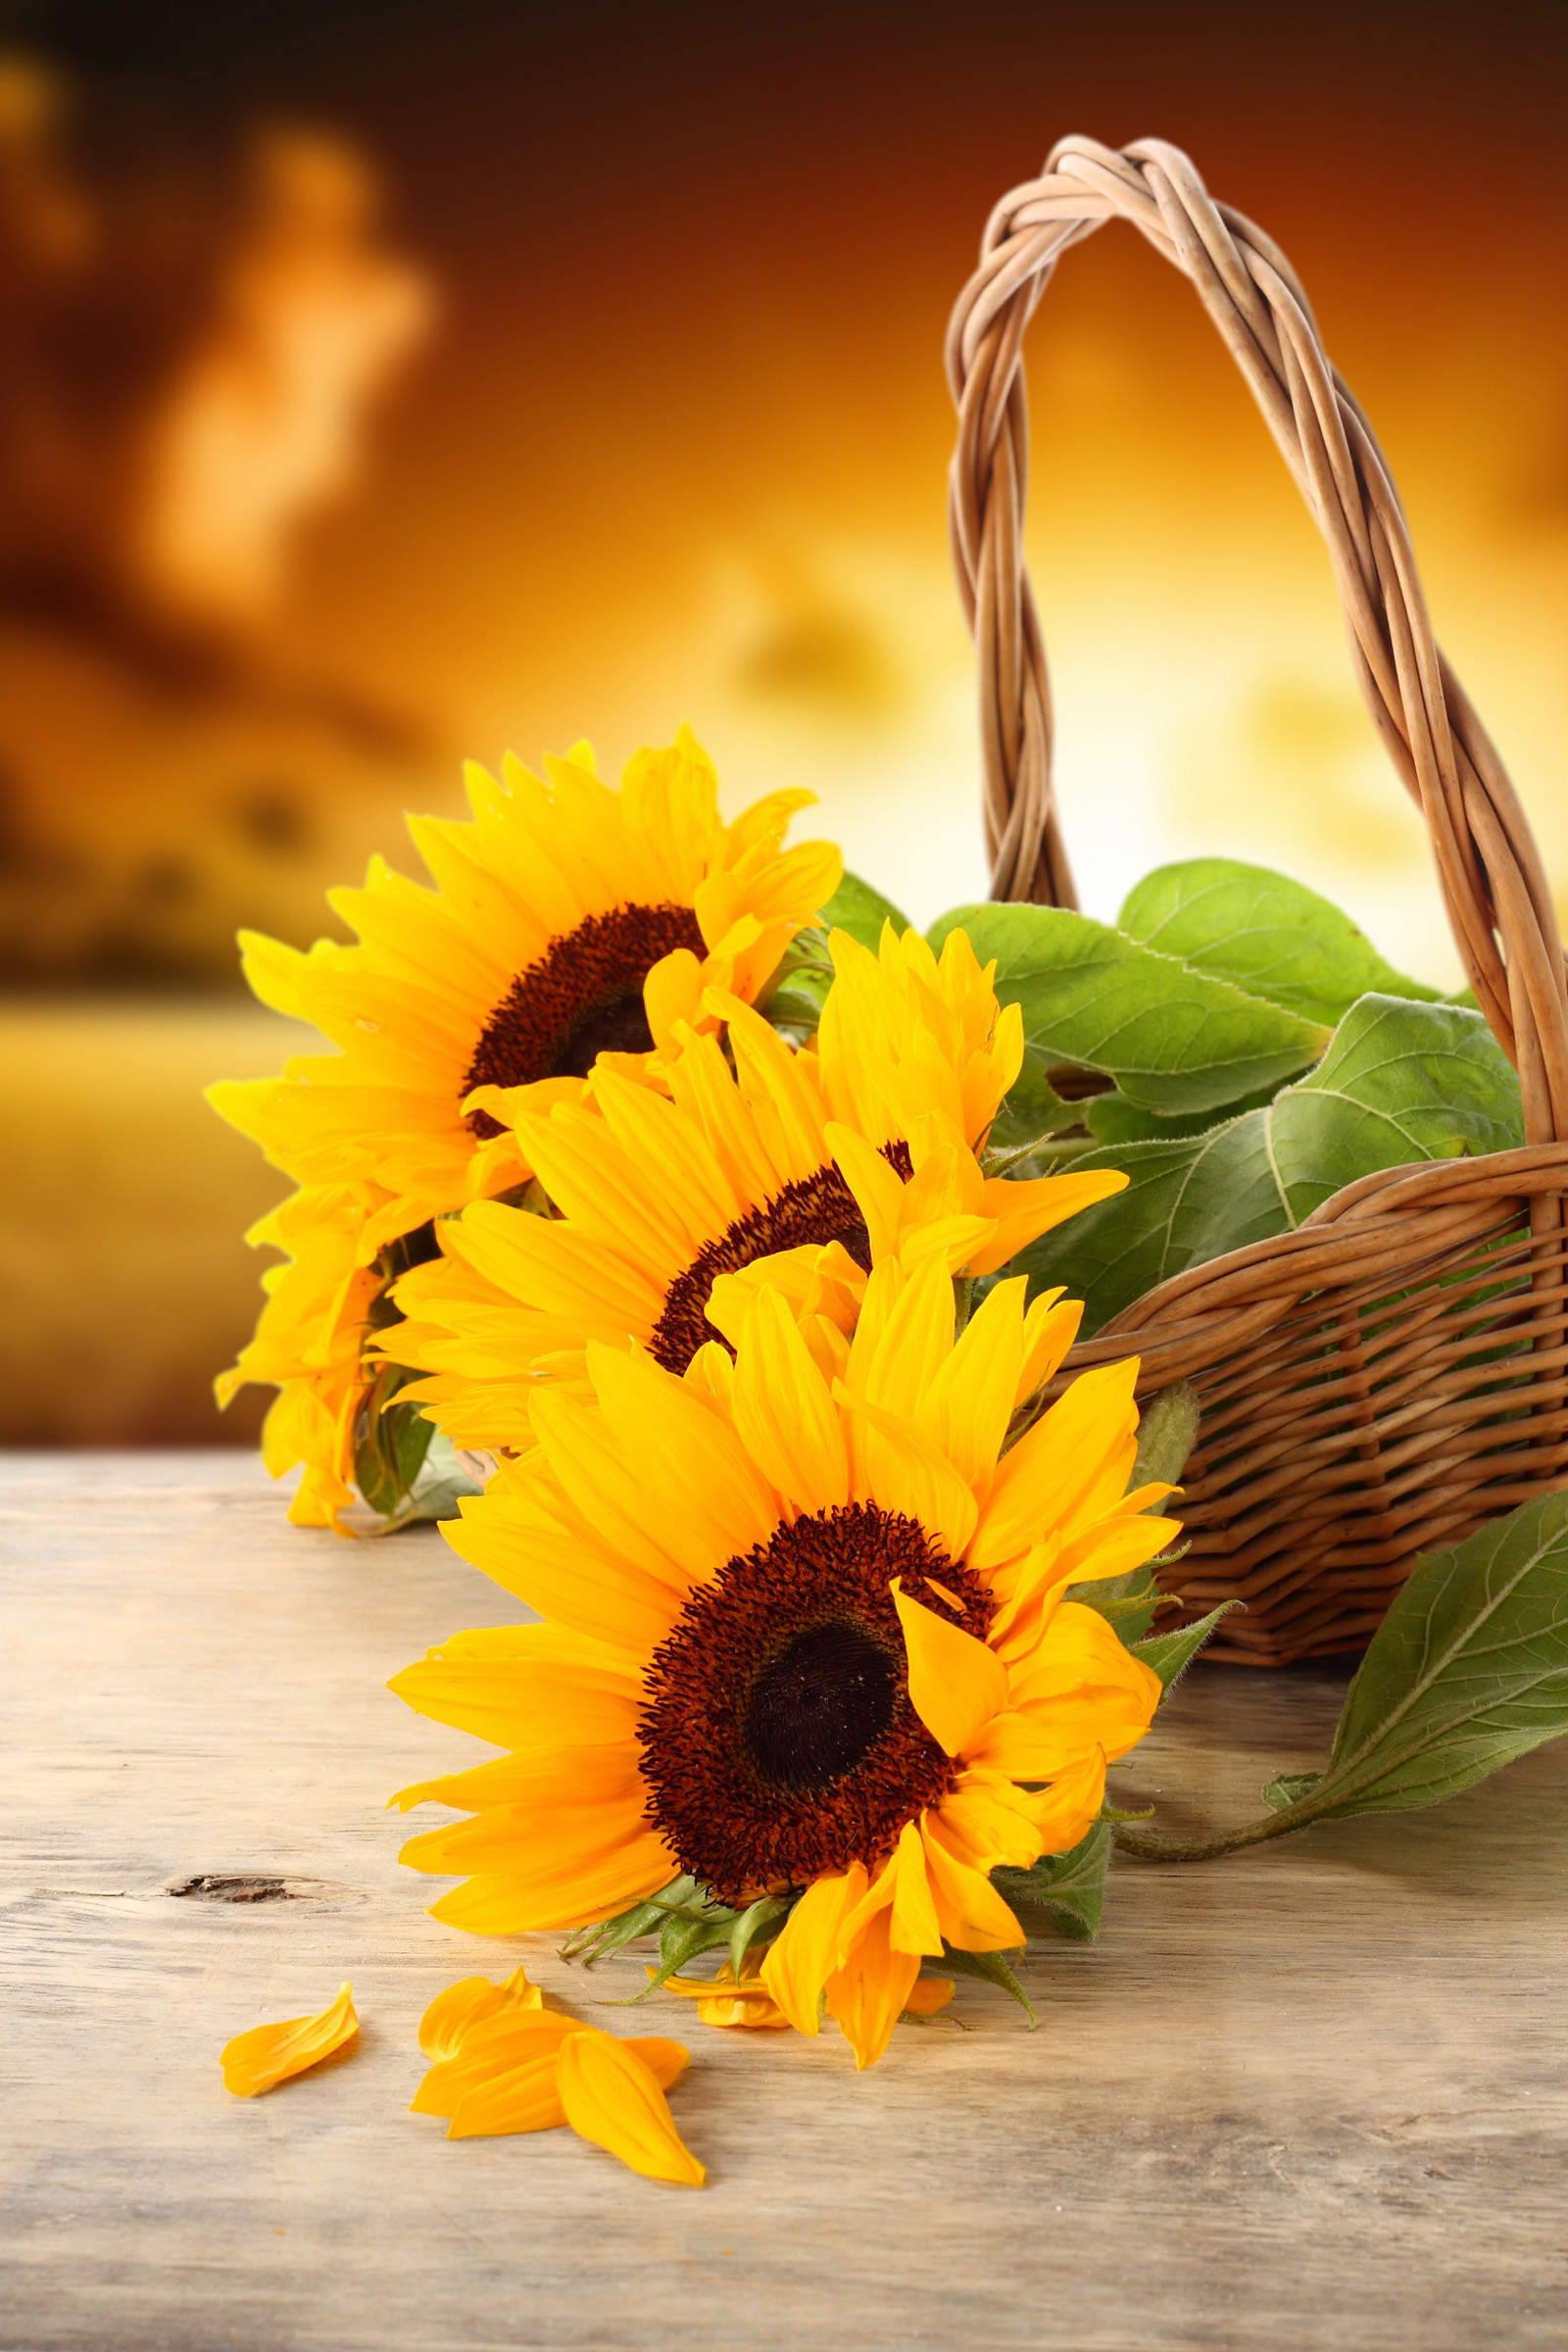 Basket with sunflowers 50977